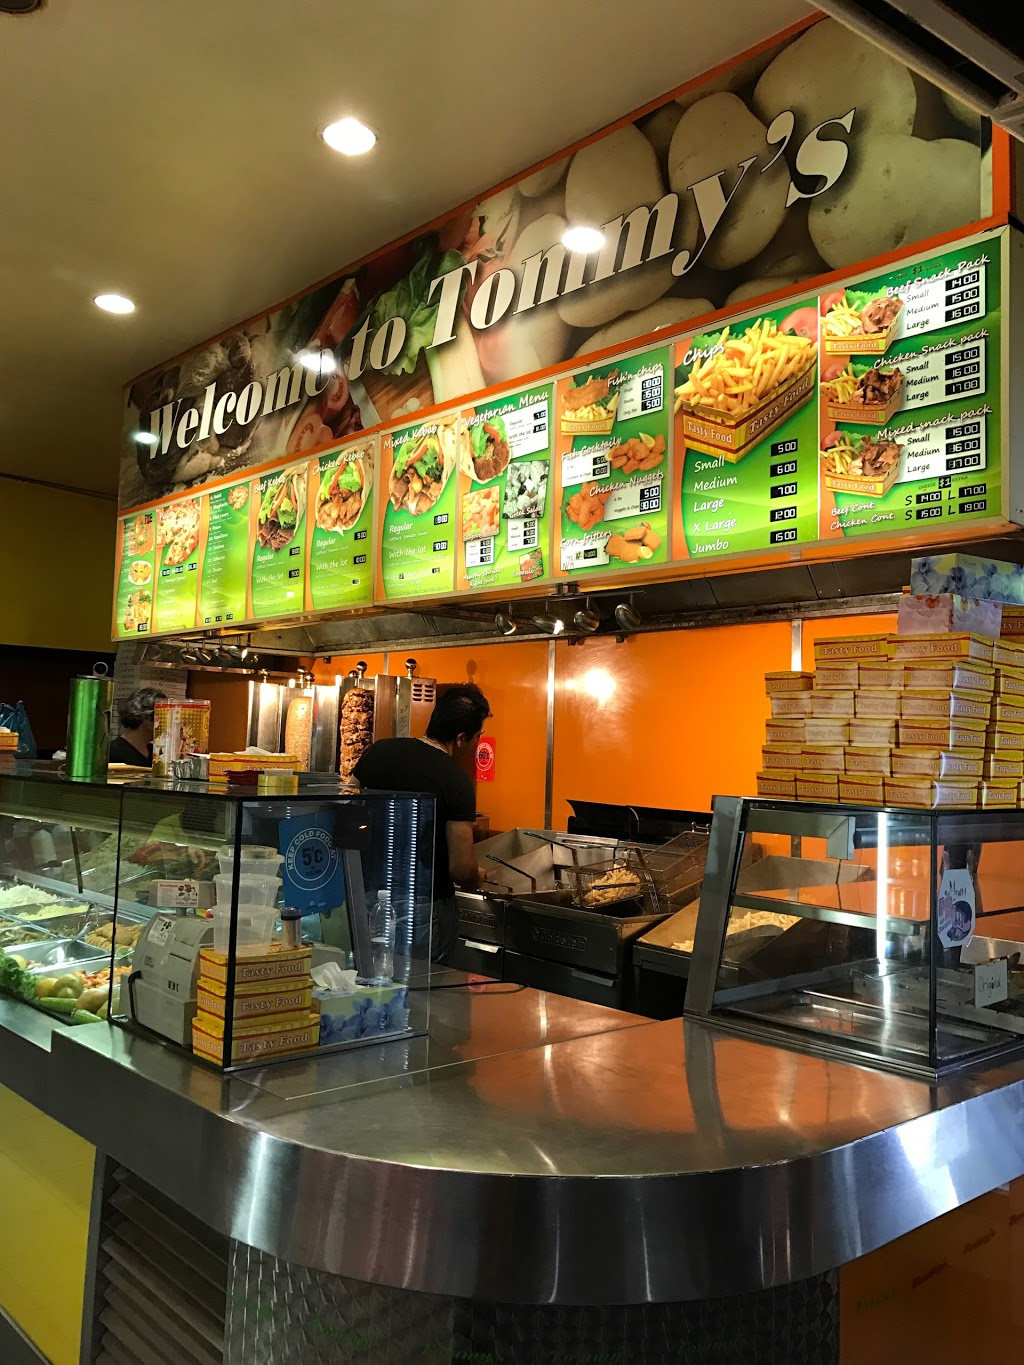 TOMMYS PIZZA AND KEBABS | meal takeaway | 201 Hamilton Rd, Fairfield West NSW 2165, Australia | 0297245544 OR +61 2 9724 5544